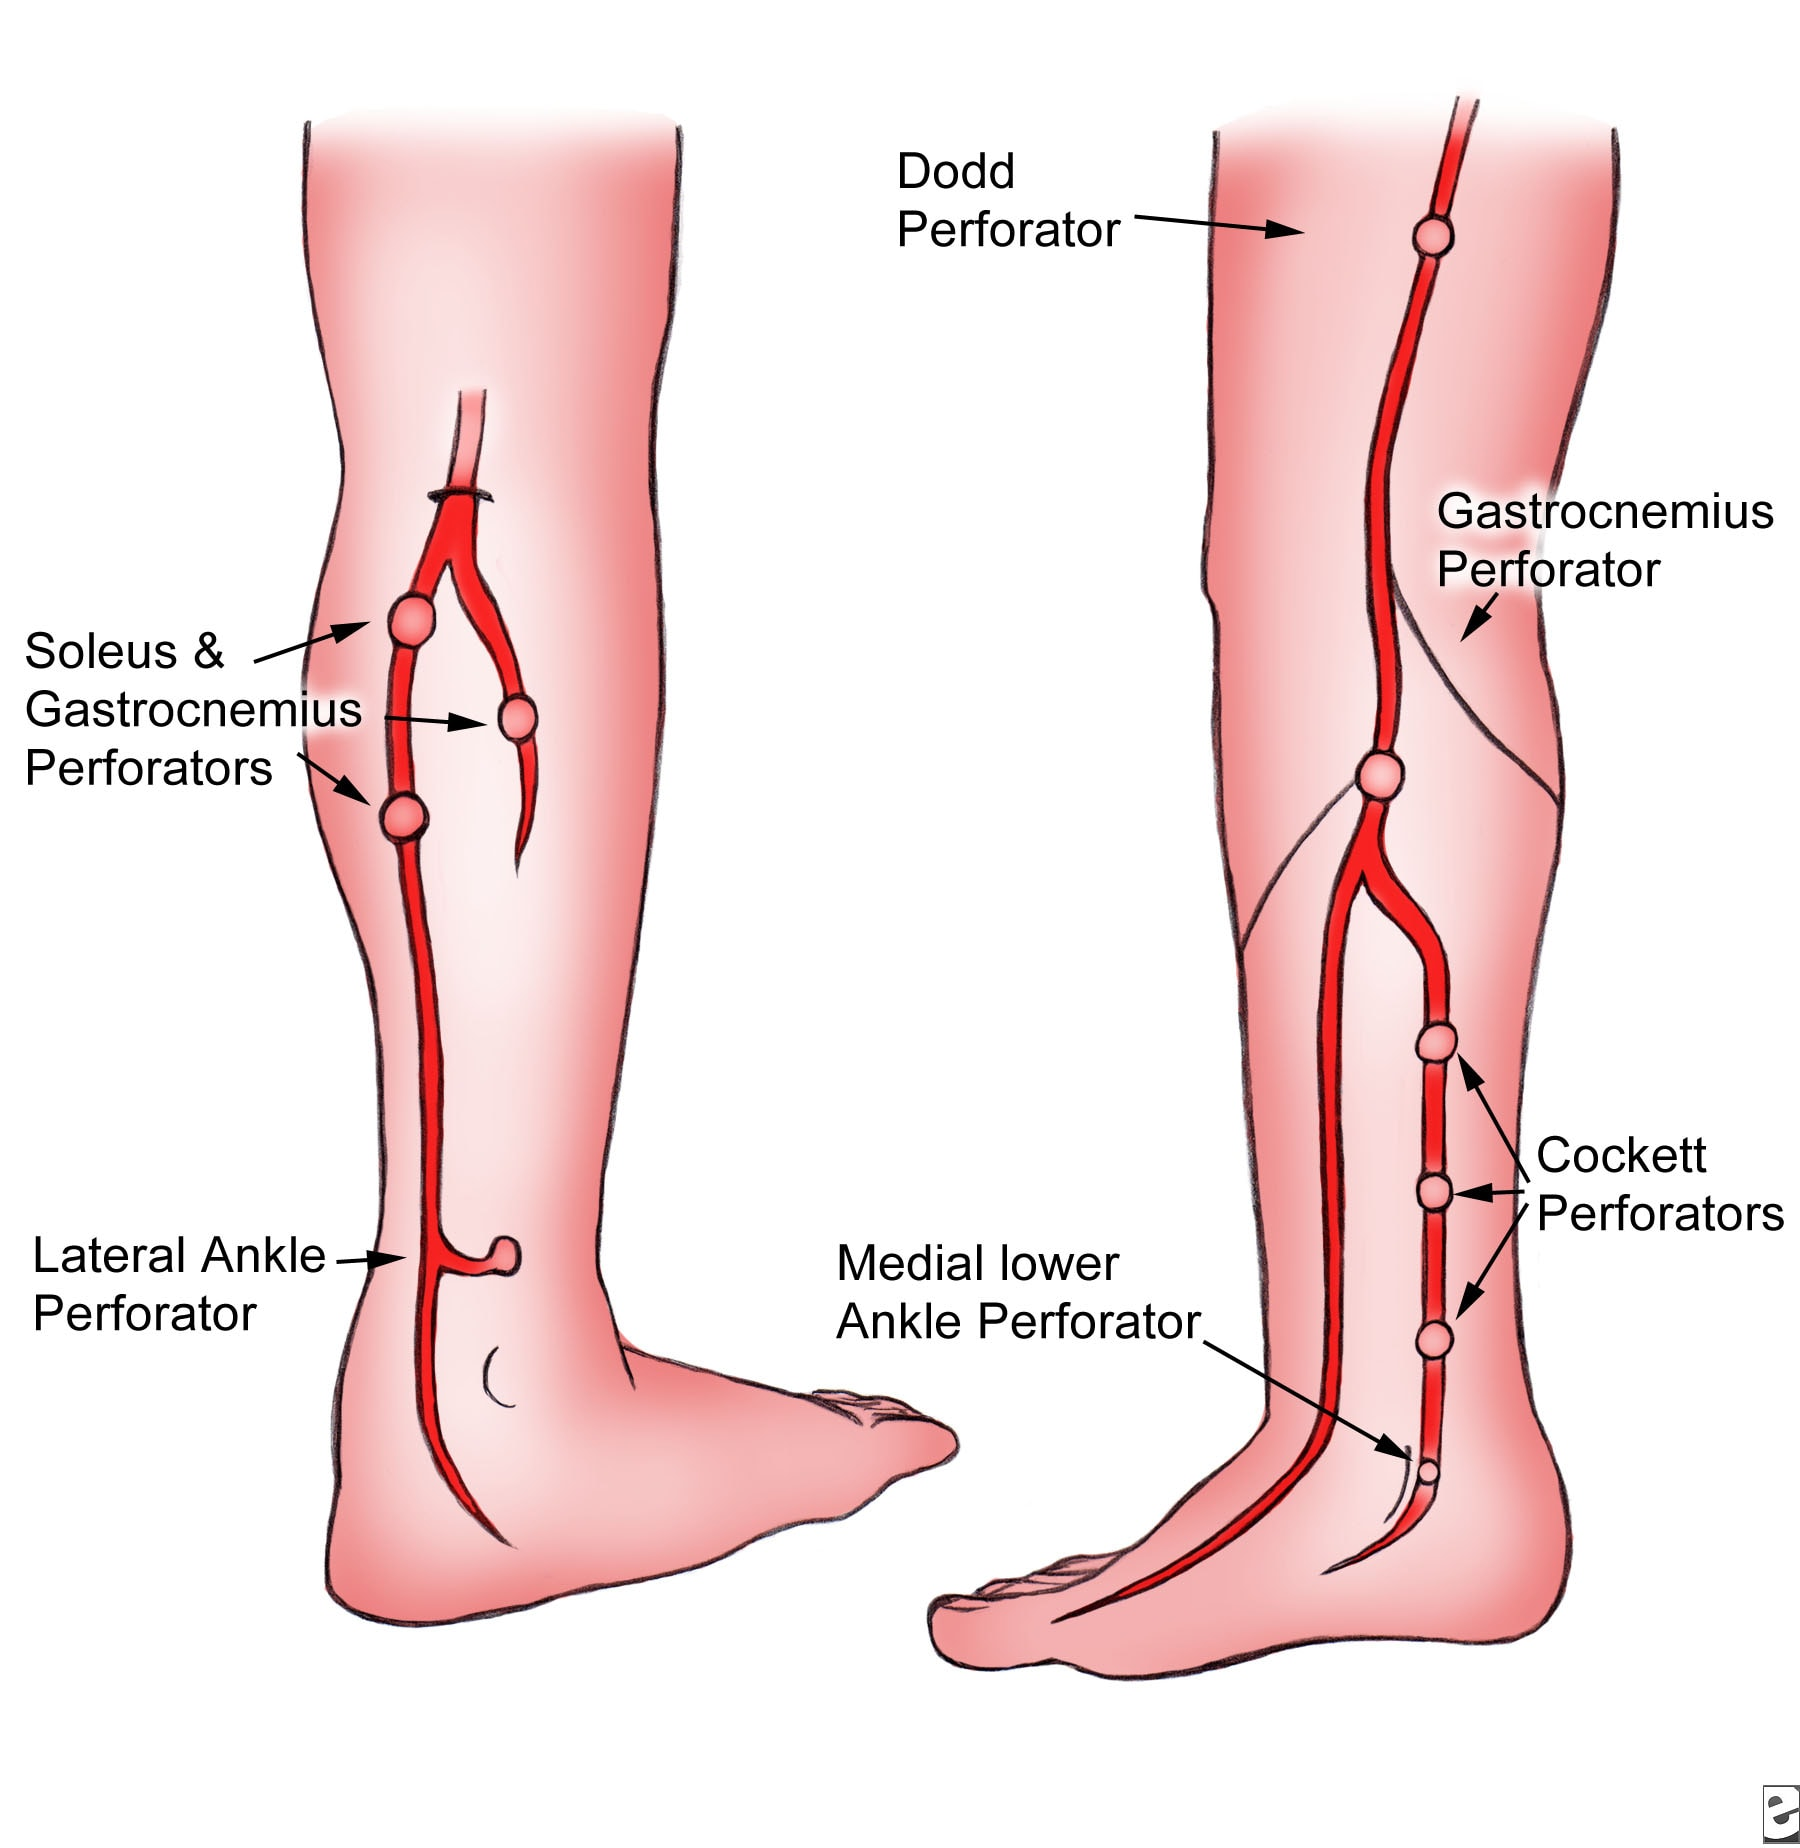 leg vein. Factors that can increase risk for varicose veins can